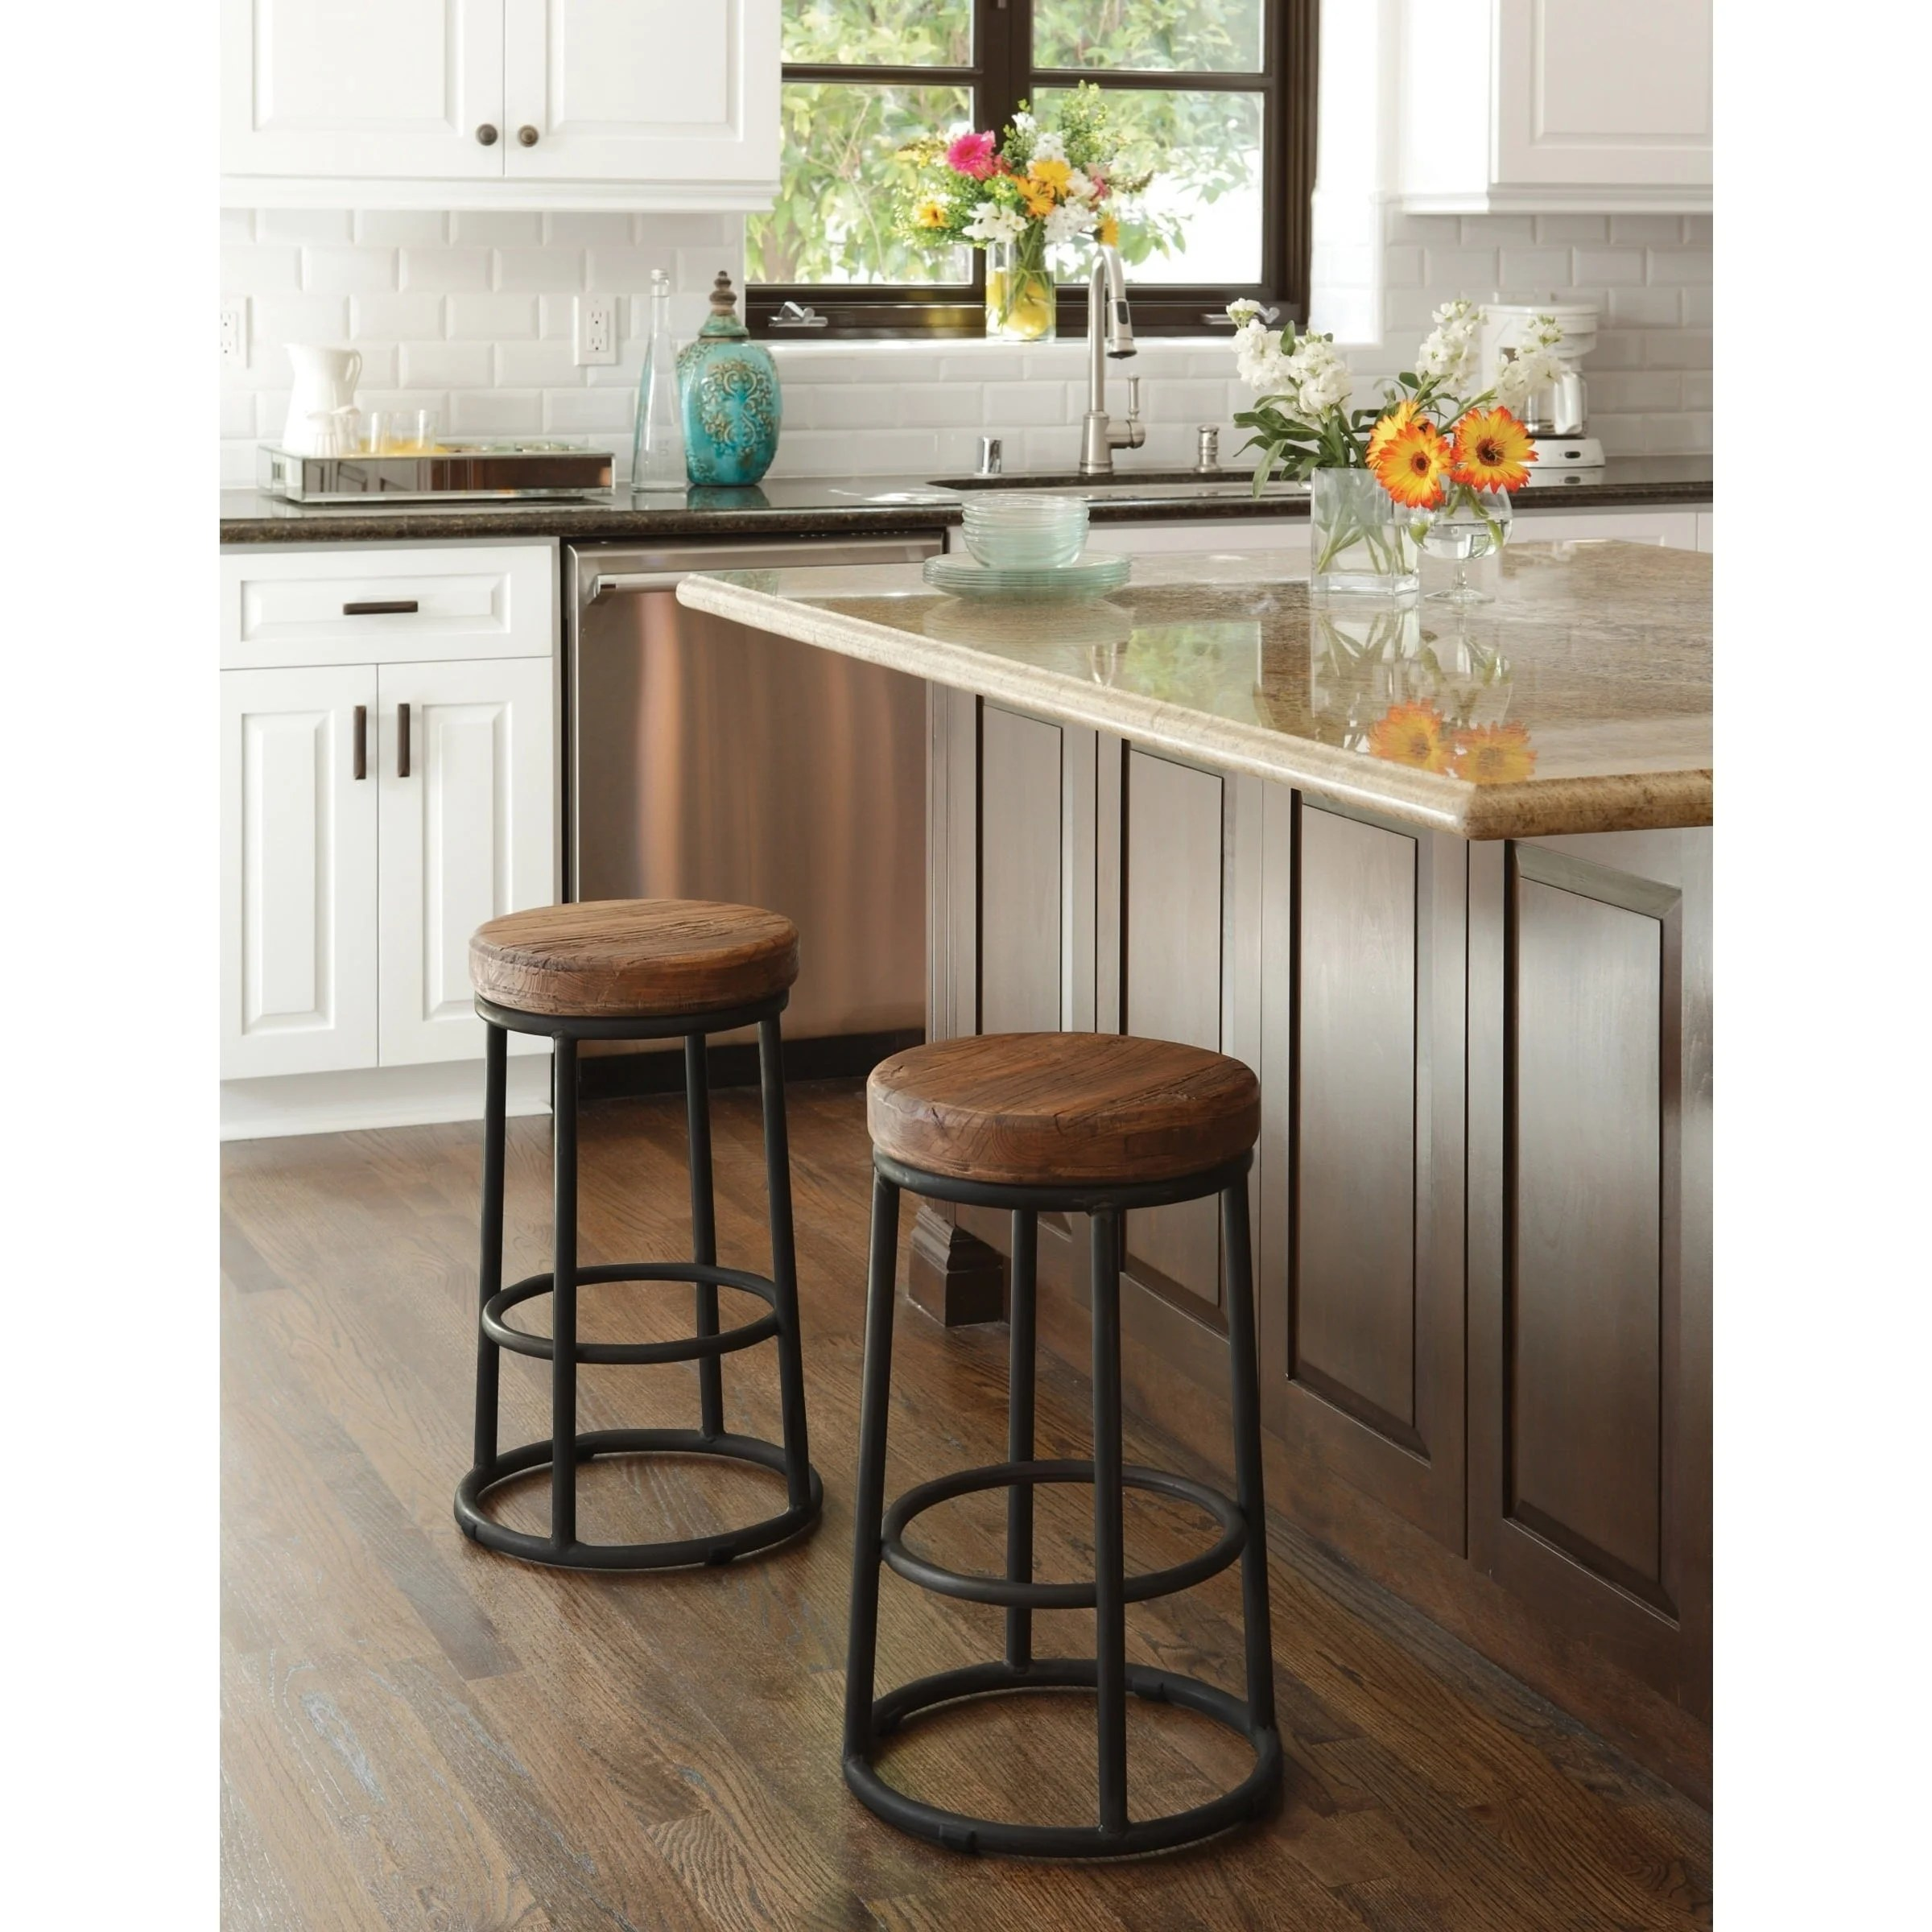 Wooden Kitchen Counter Stools Carbon Loft Horseshoe Reclaimed Wood And Iron Bar And Counter Stools